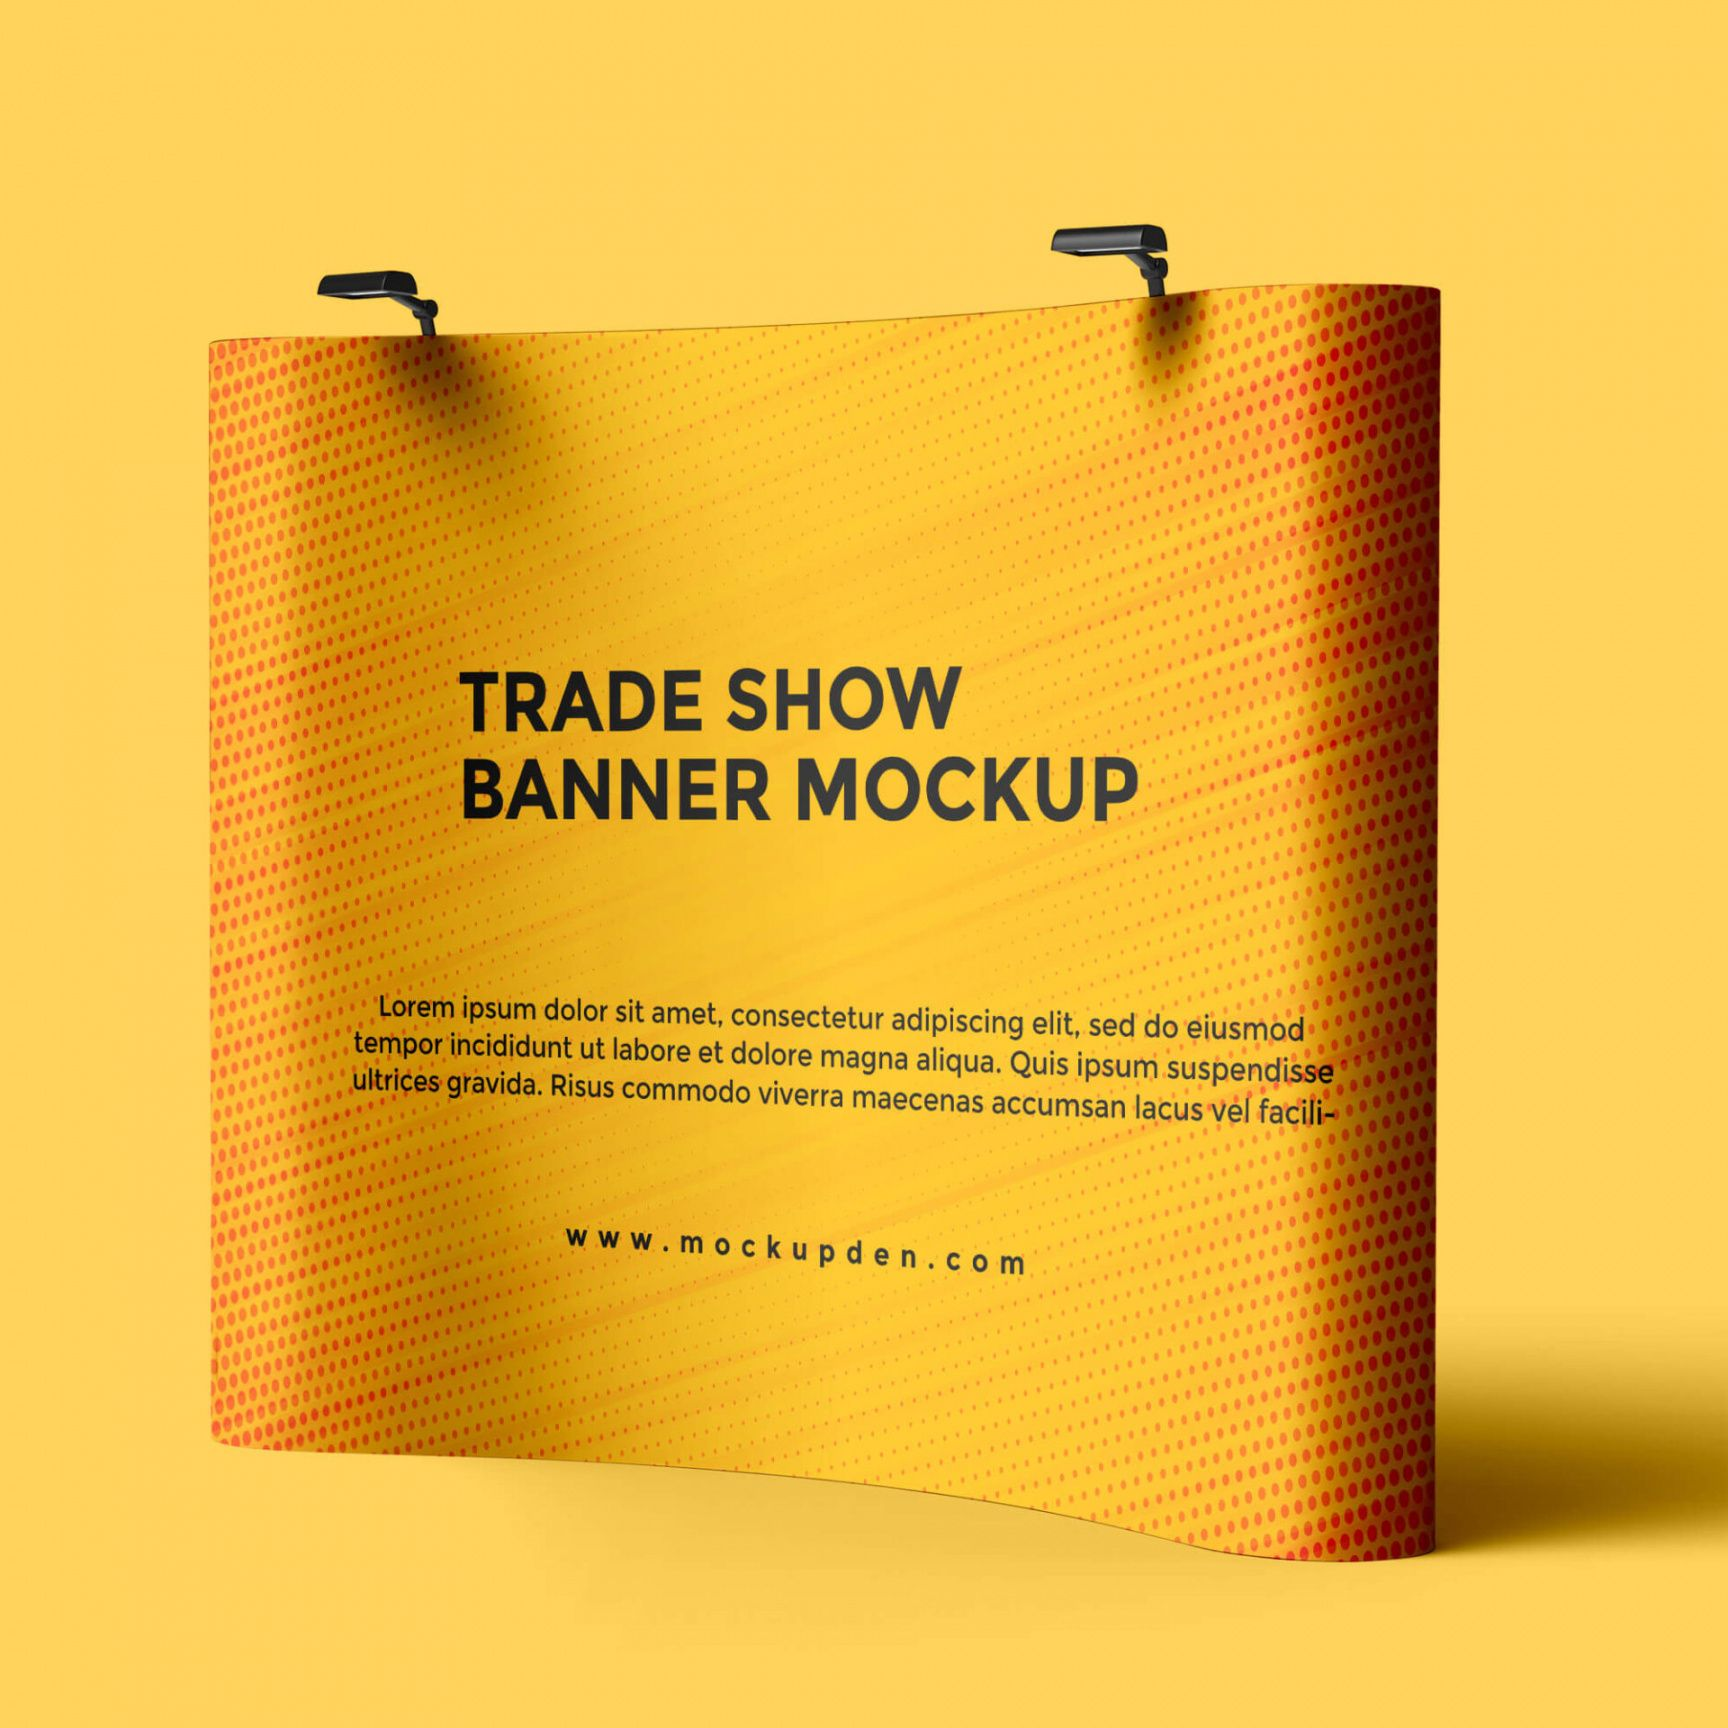 free trade show banner mockup psd template  mockup den trade show banner template